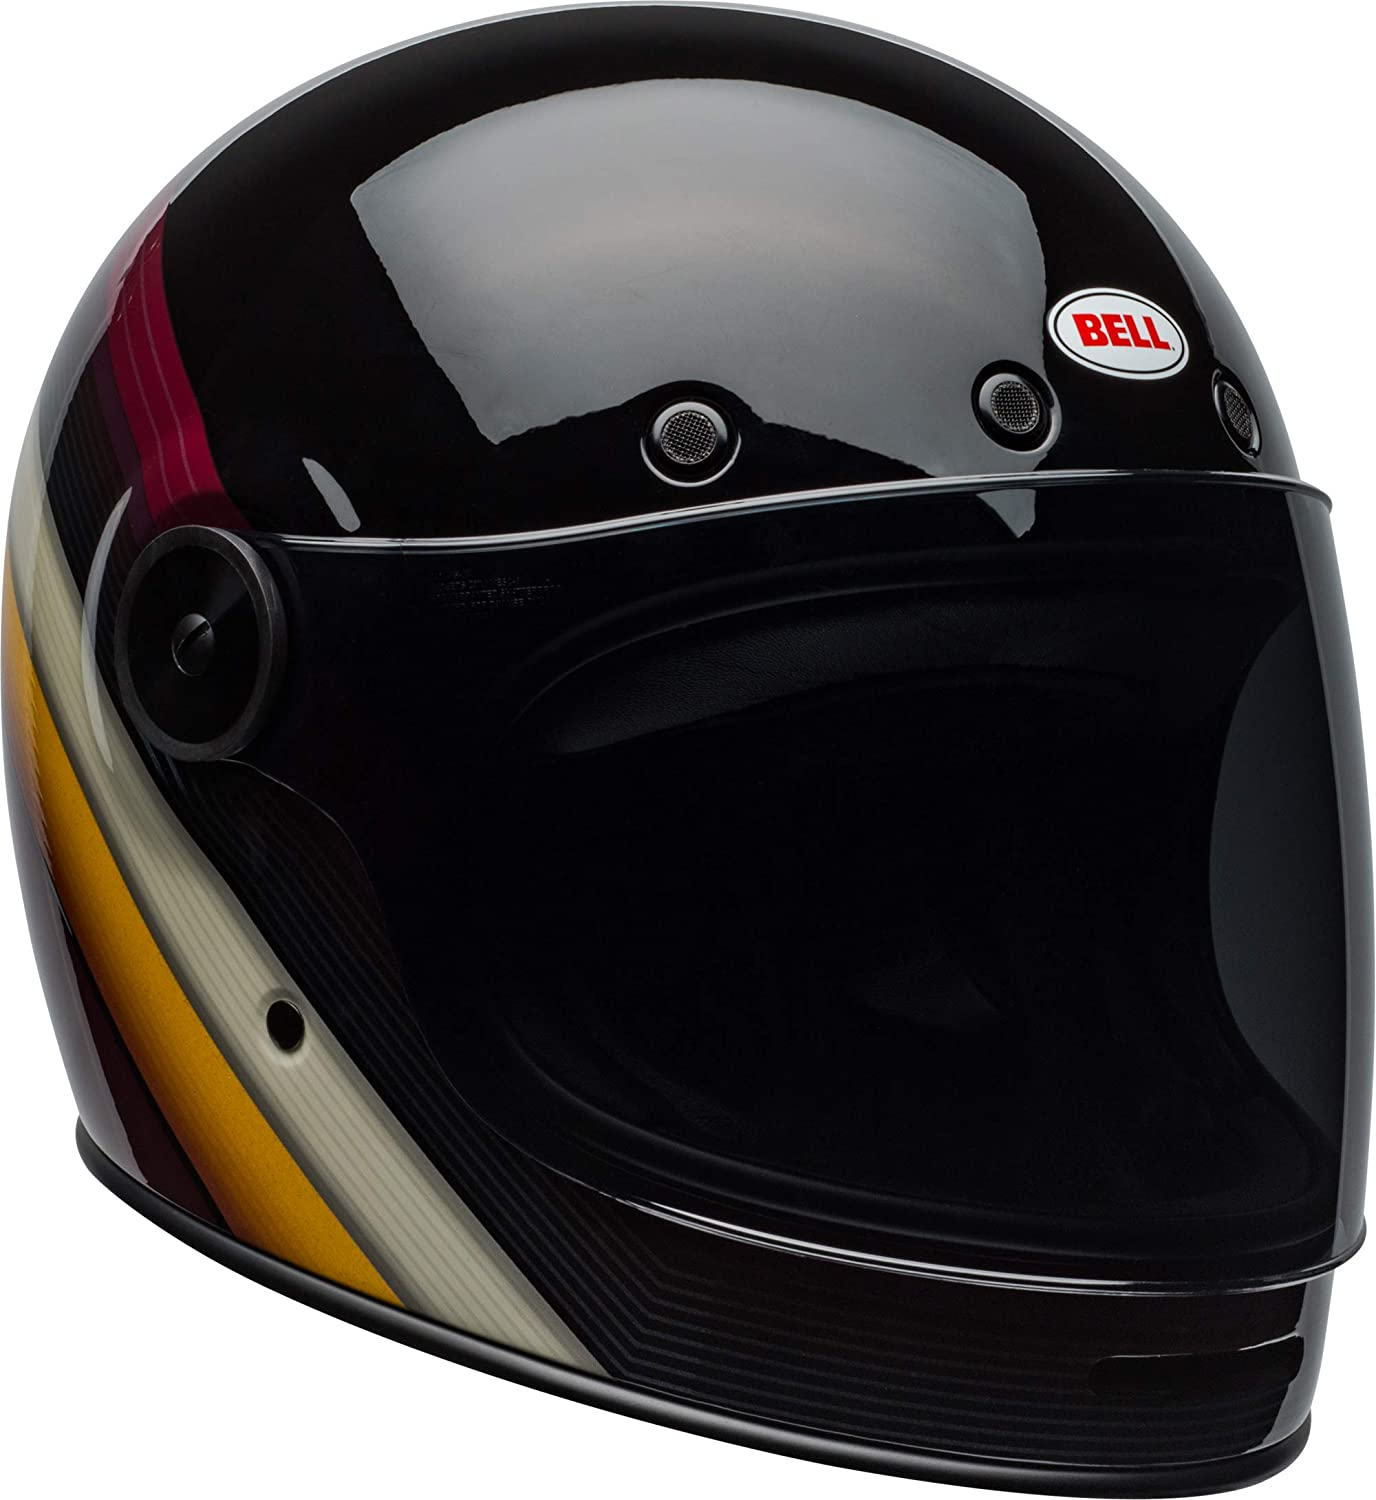 9a3668c2 Amazon.com: Bell Bullitt Full-Face Motorcycle Helmet (Burnout Gloss  Black/White/Maroon, X-Small): Automotive